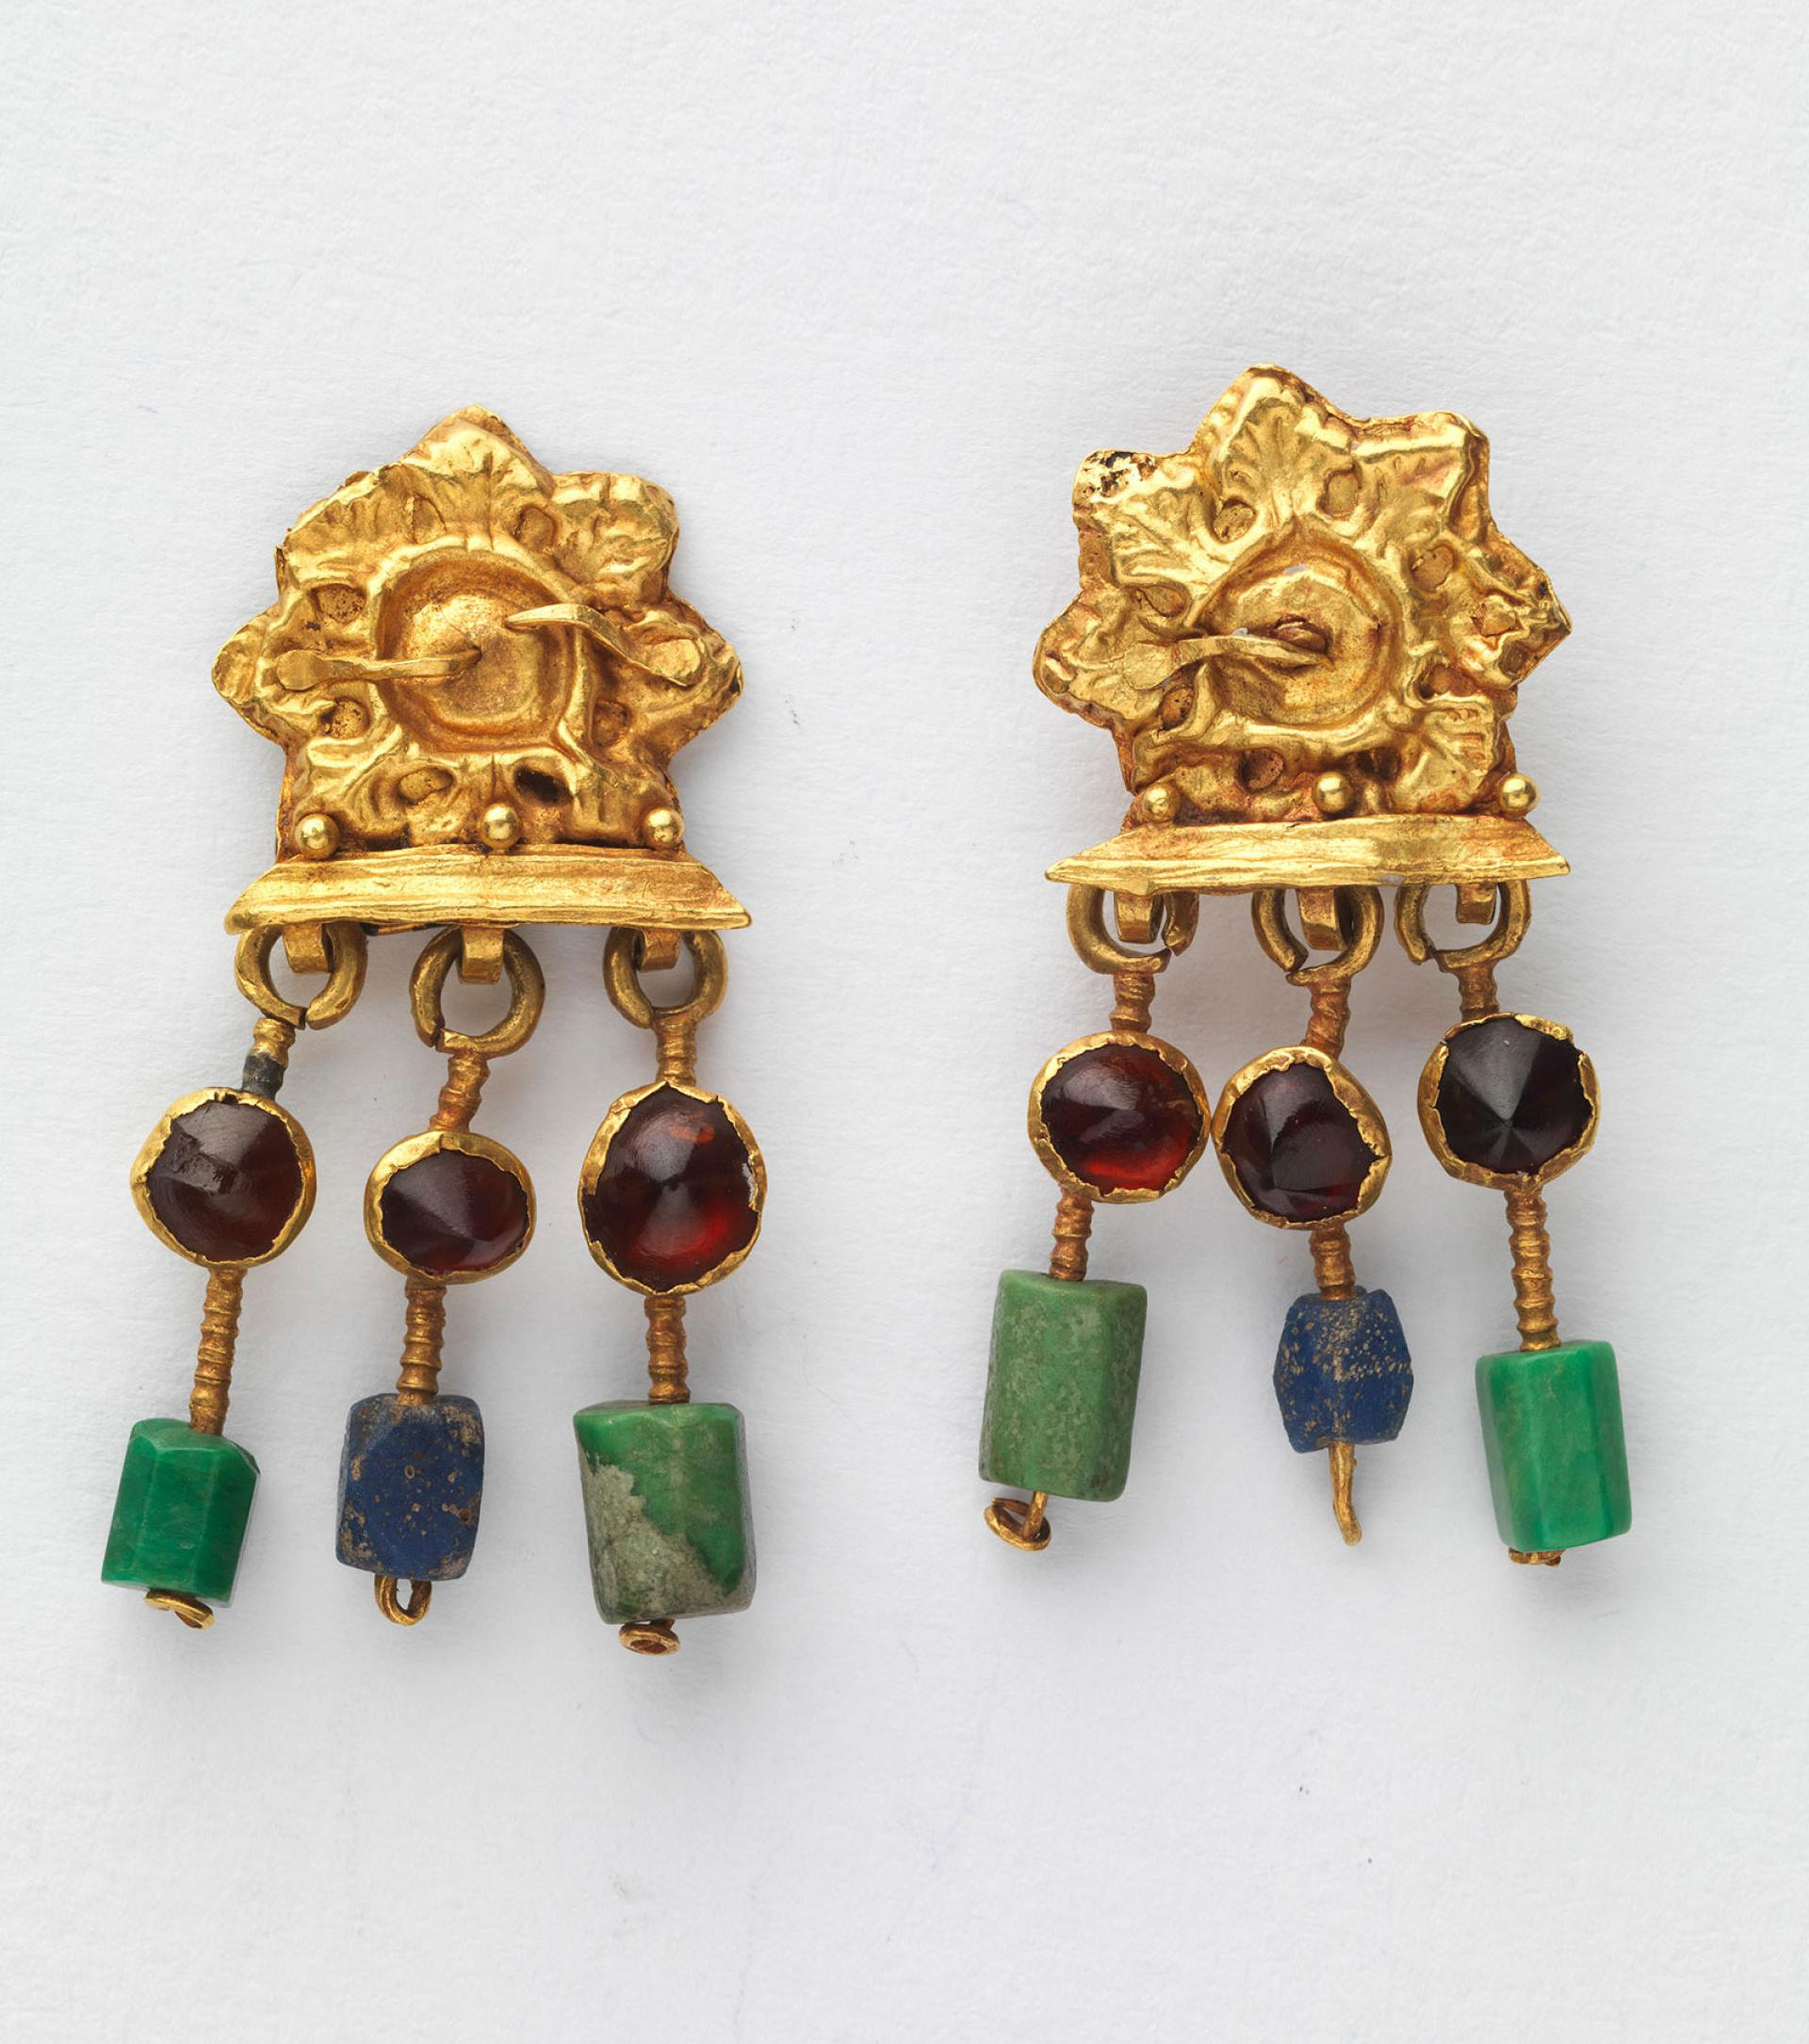 SHM 7940 - A pair of earringsGold - rubby - glassRoman Imperial Period3rd century AD